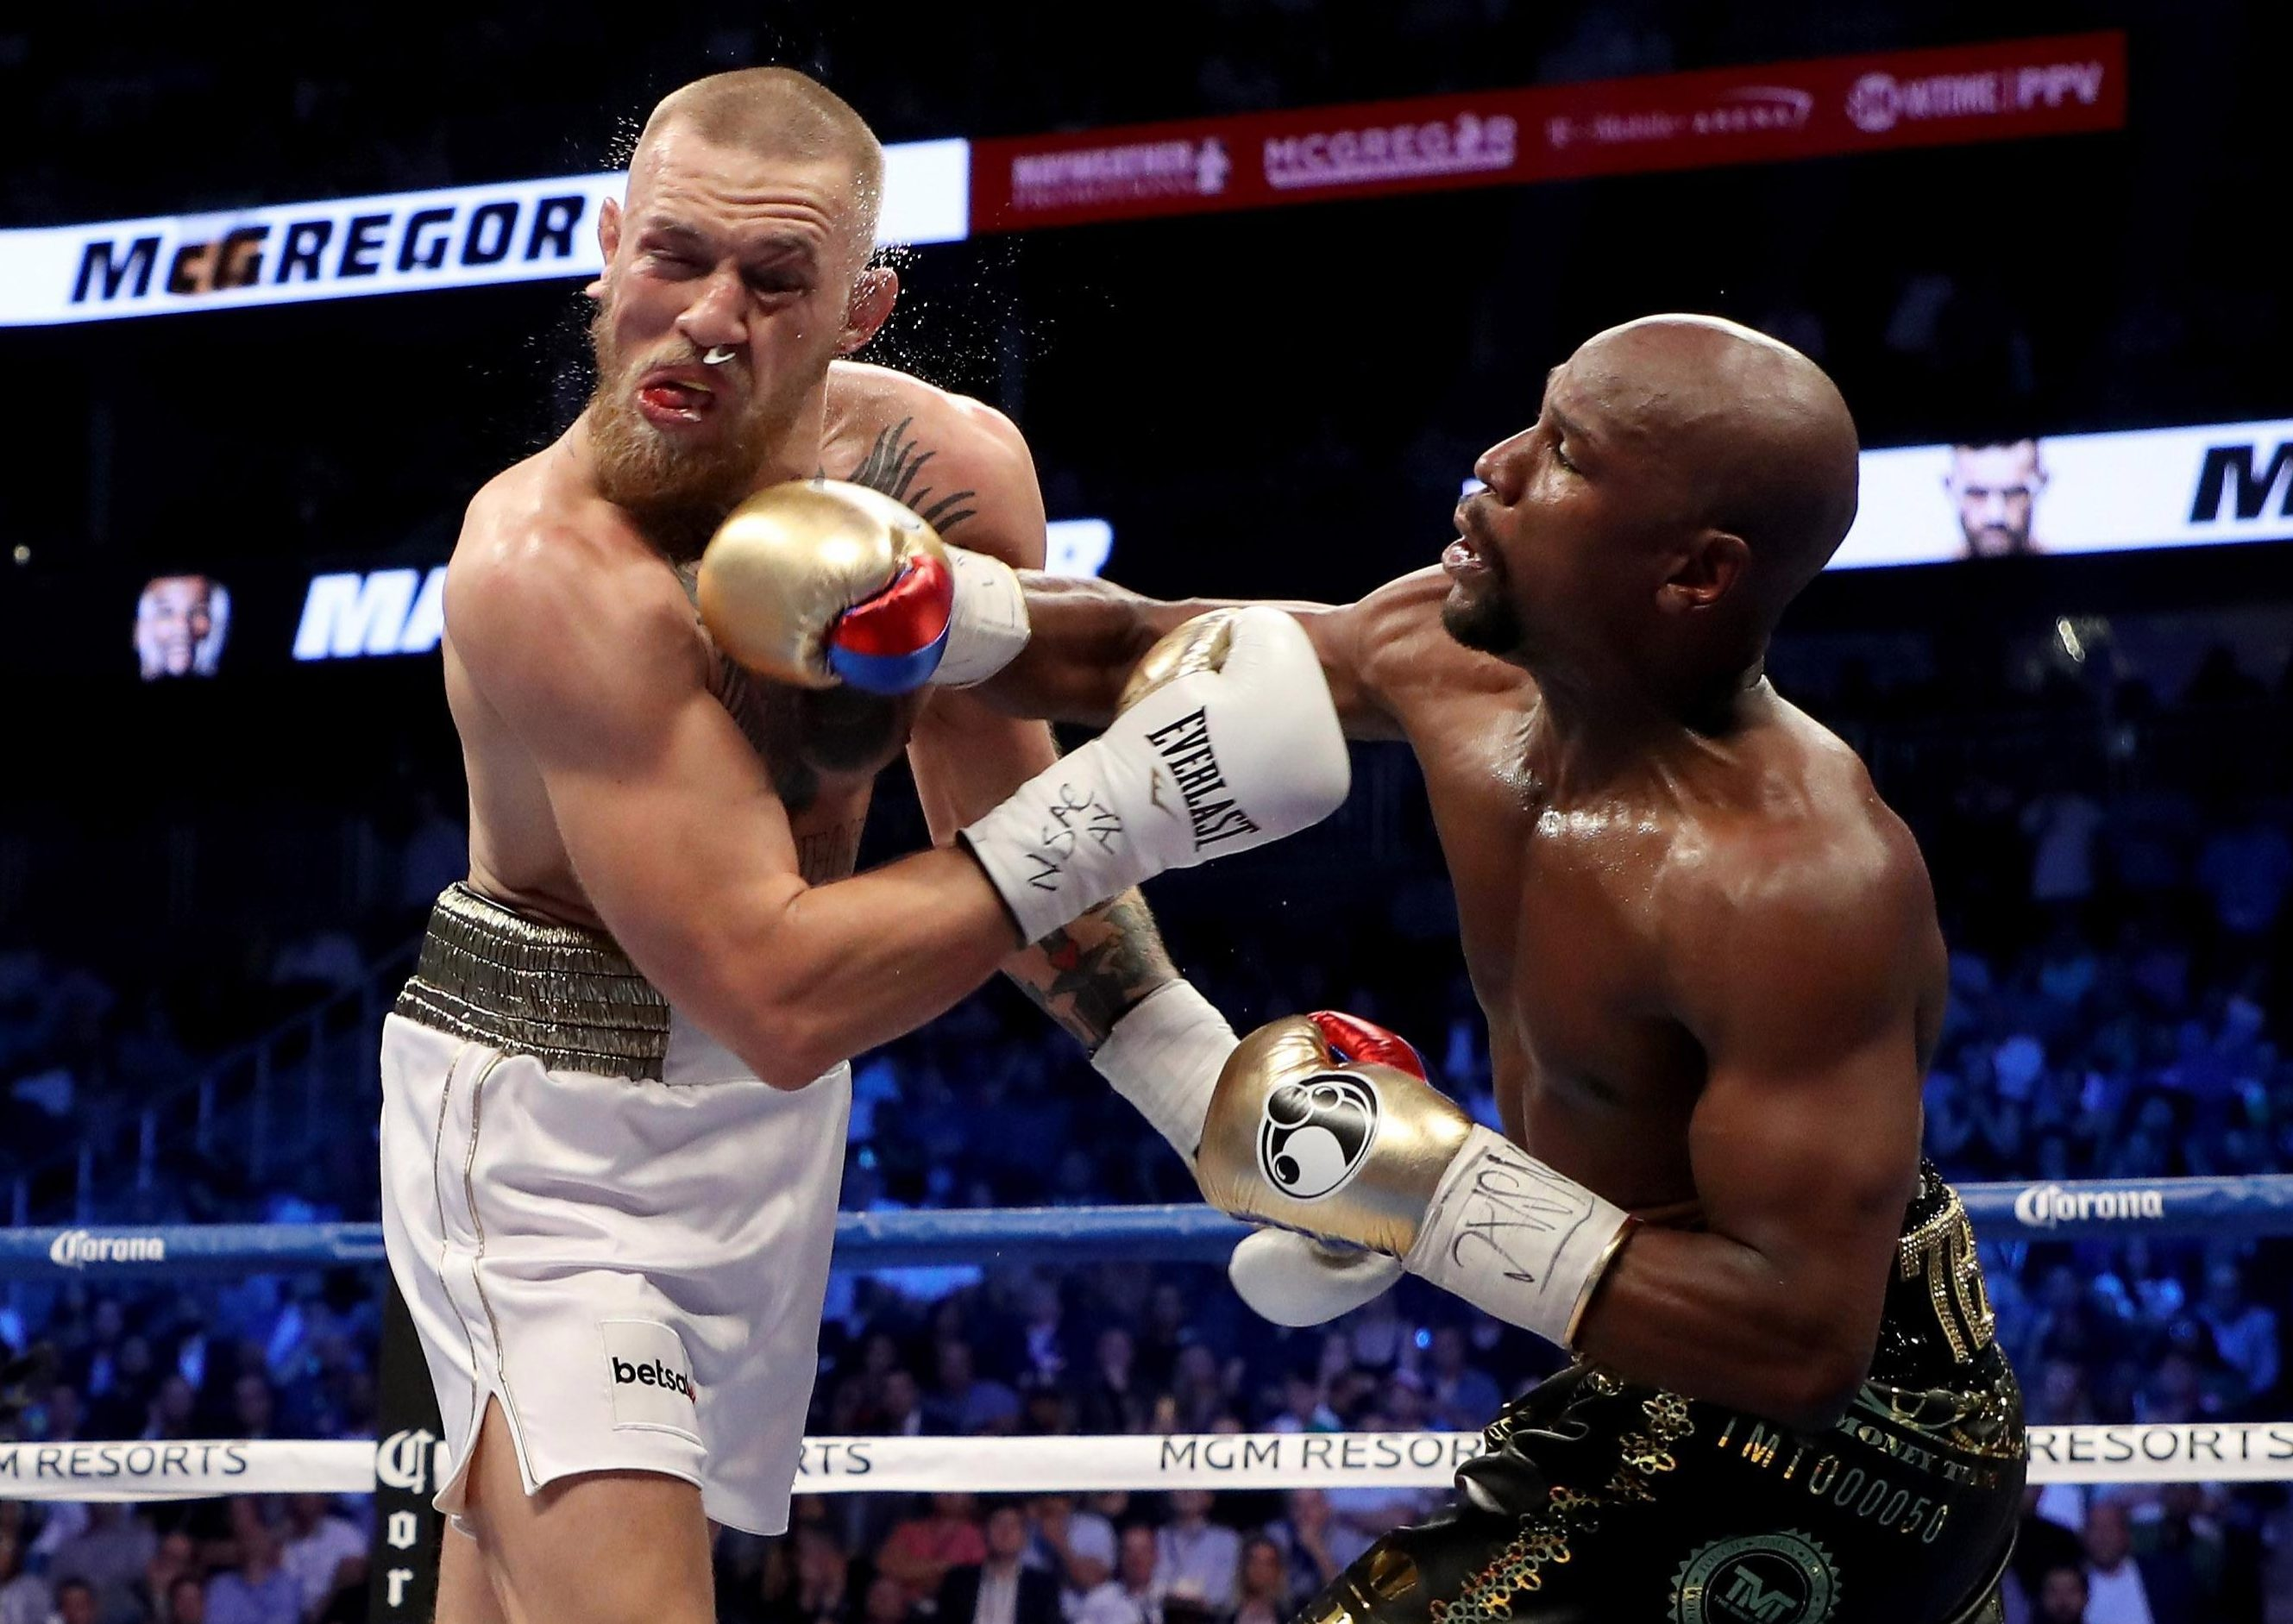 McGregor went across from the UFC to boxing for his big-money fight last year